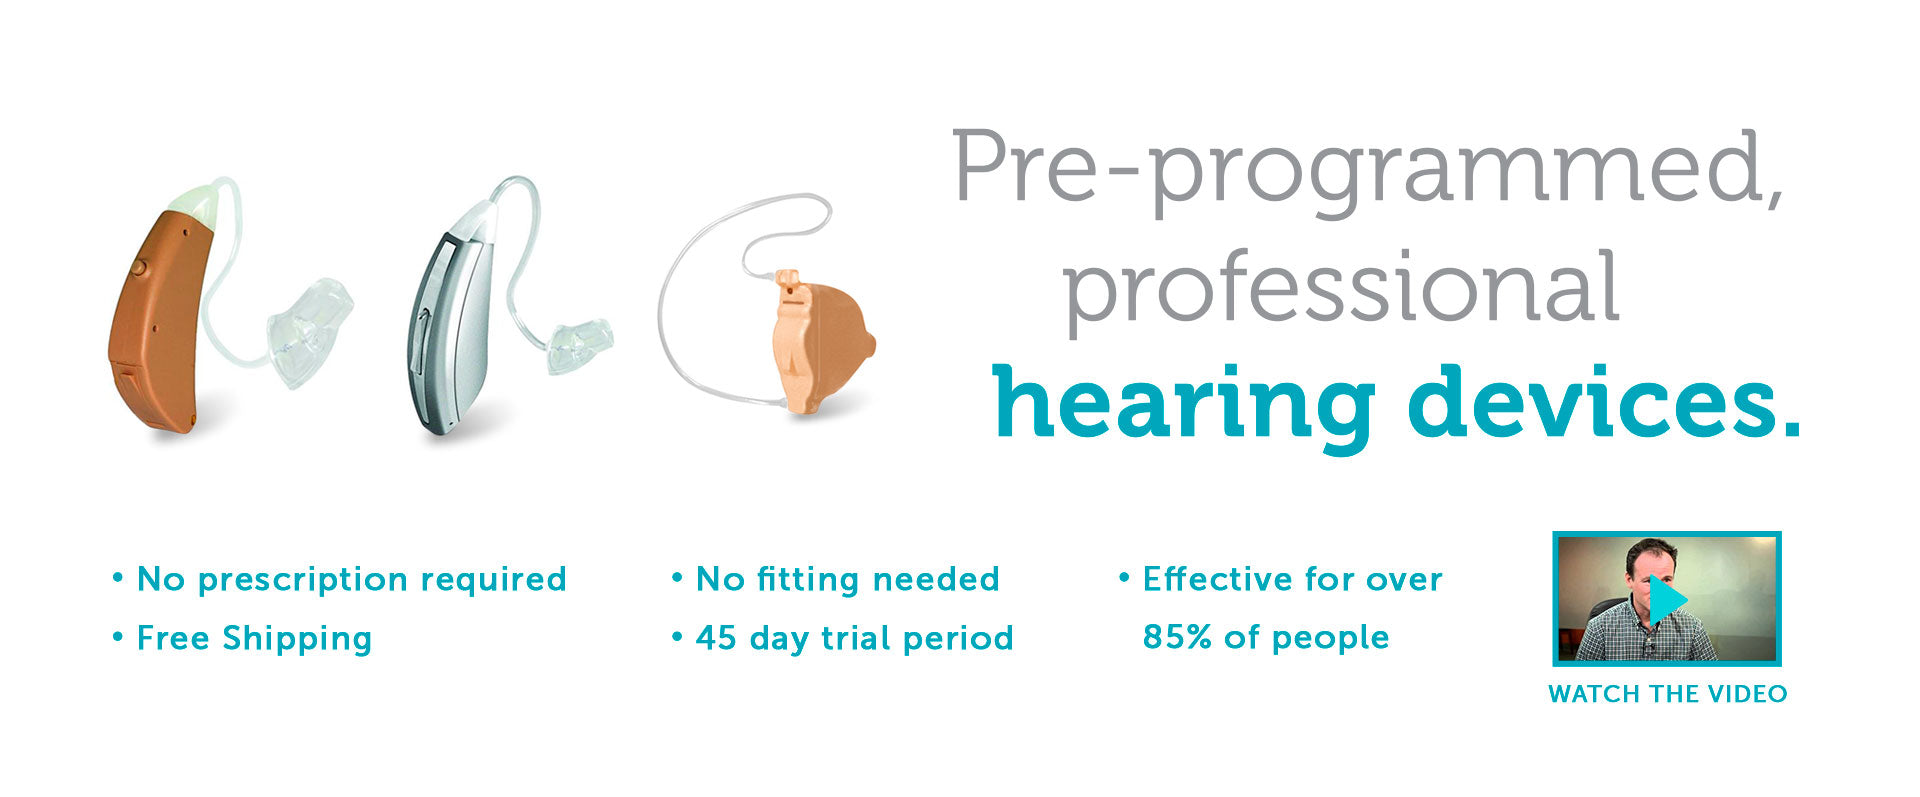 simple ear, affordable hearing aids